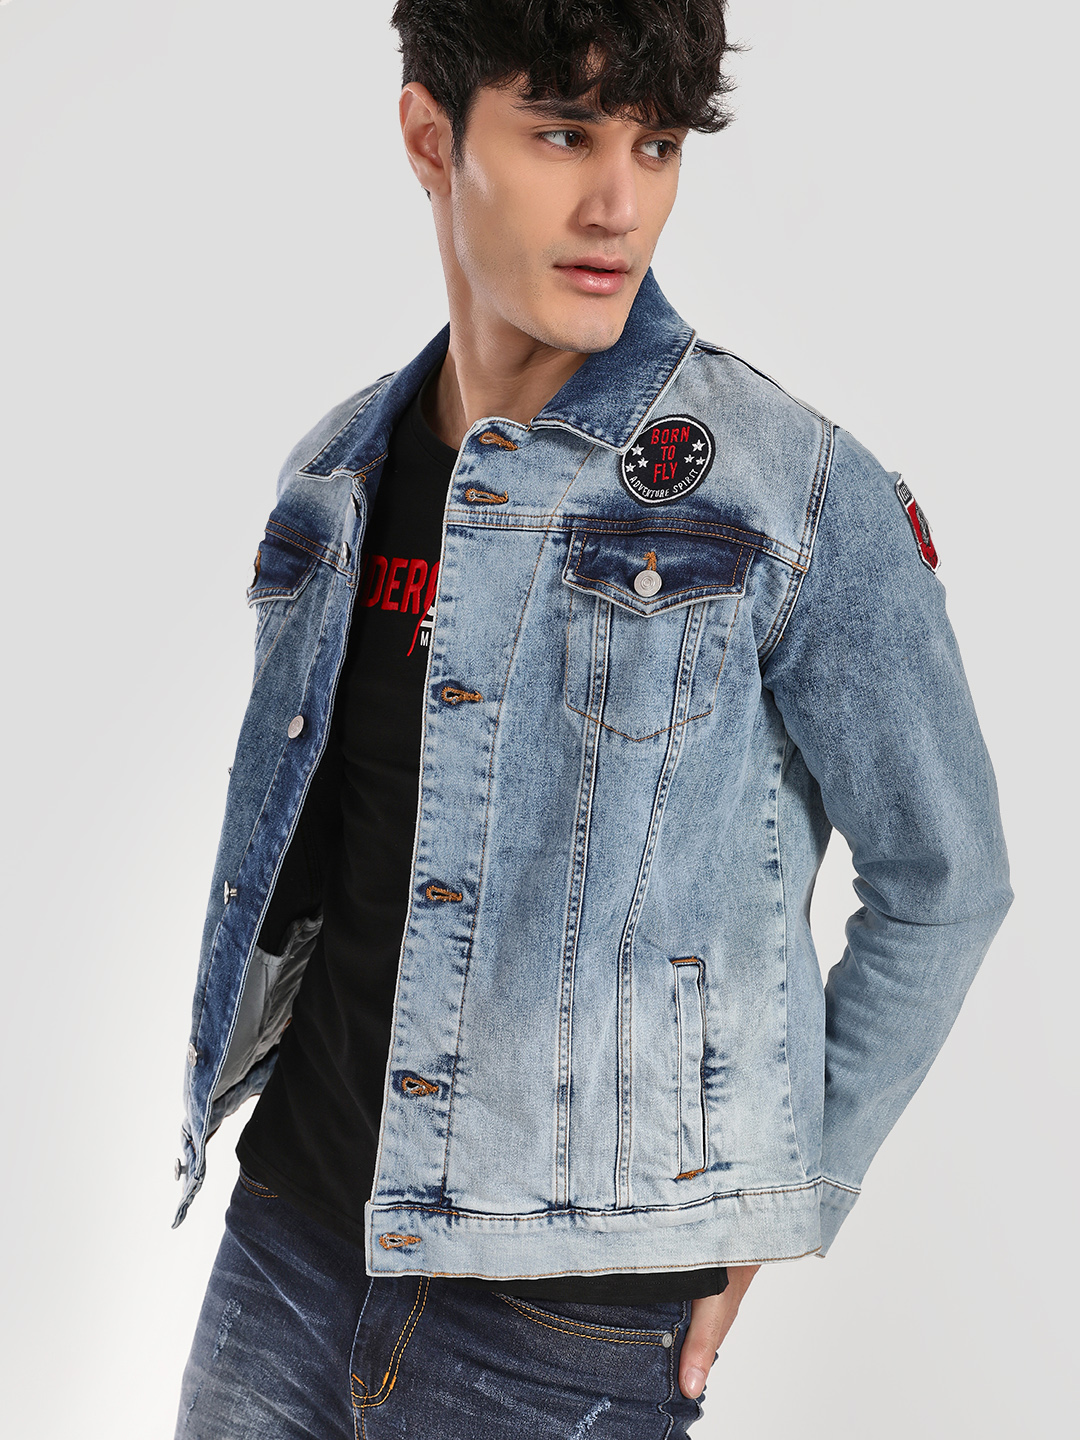 X.O.Y.O Blue Badge Acid Wash Denim Jacket 1